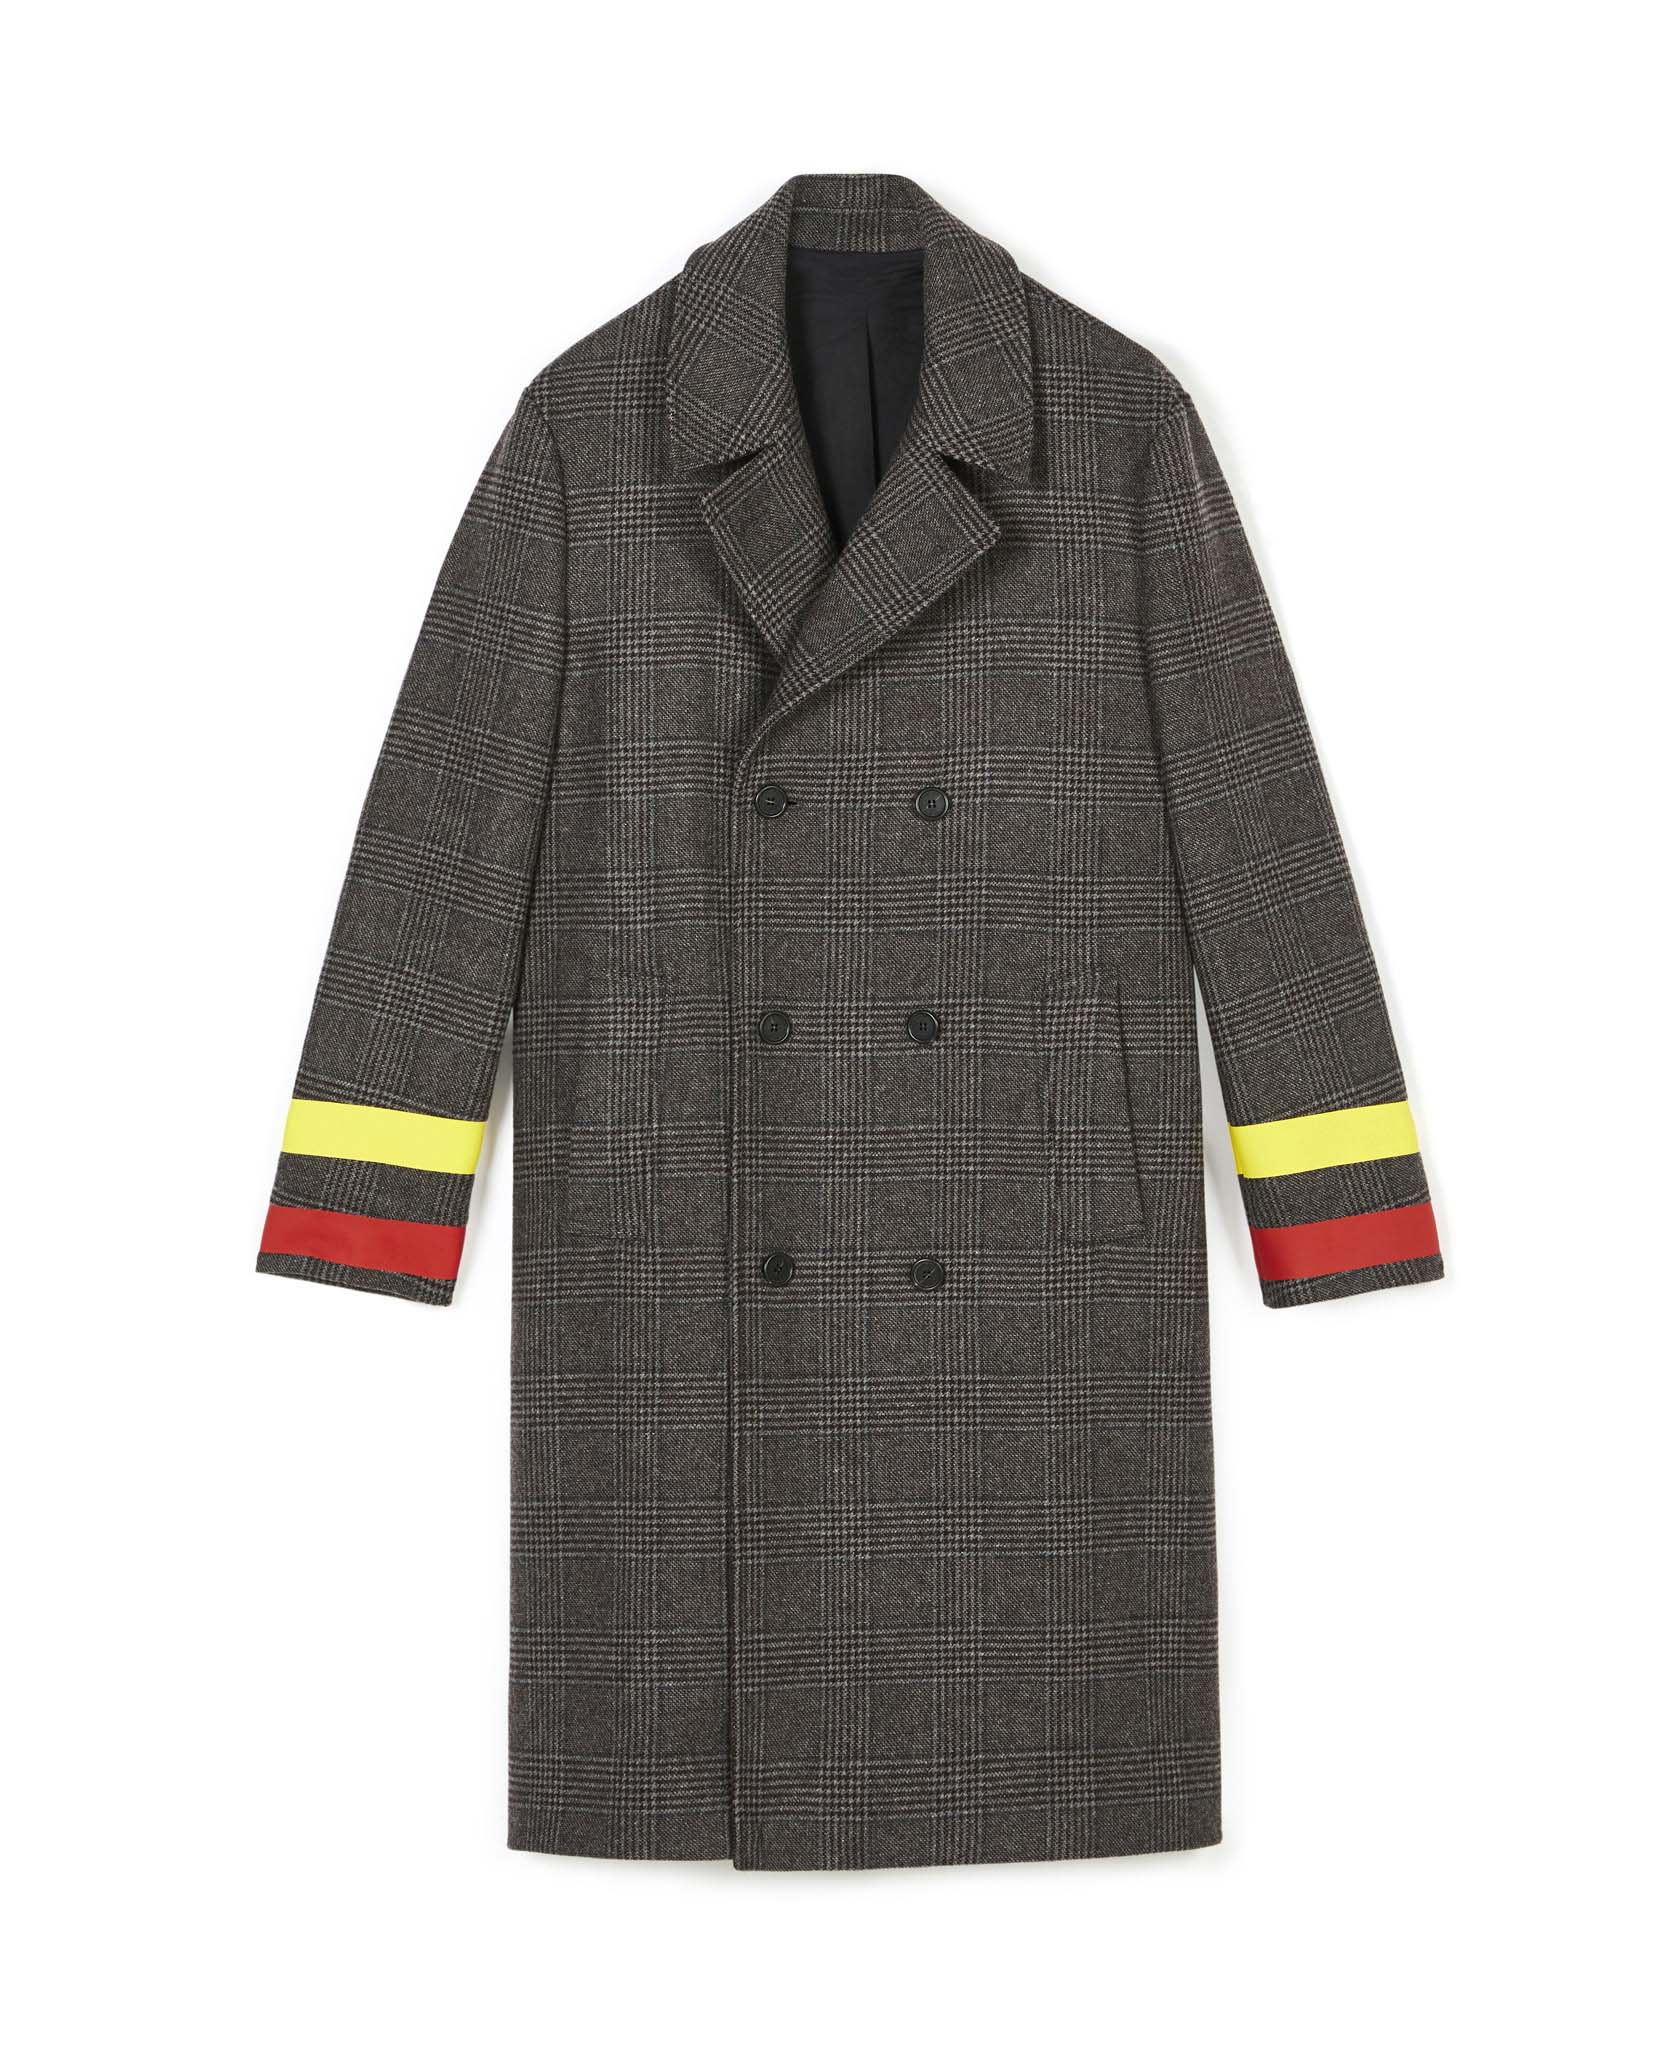 Stella Mc Cartney Check Coat Men's Collection